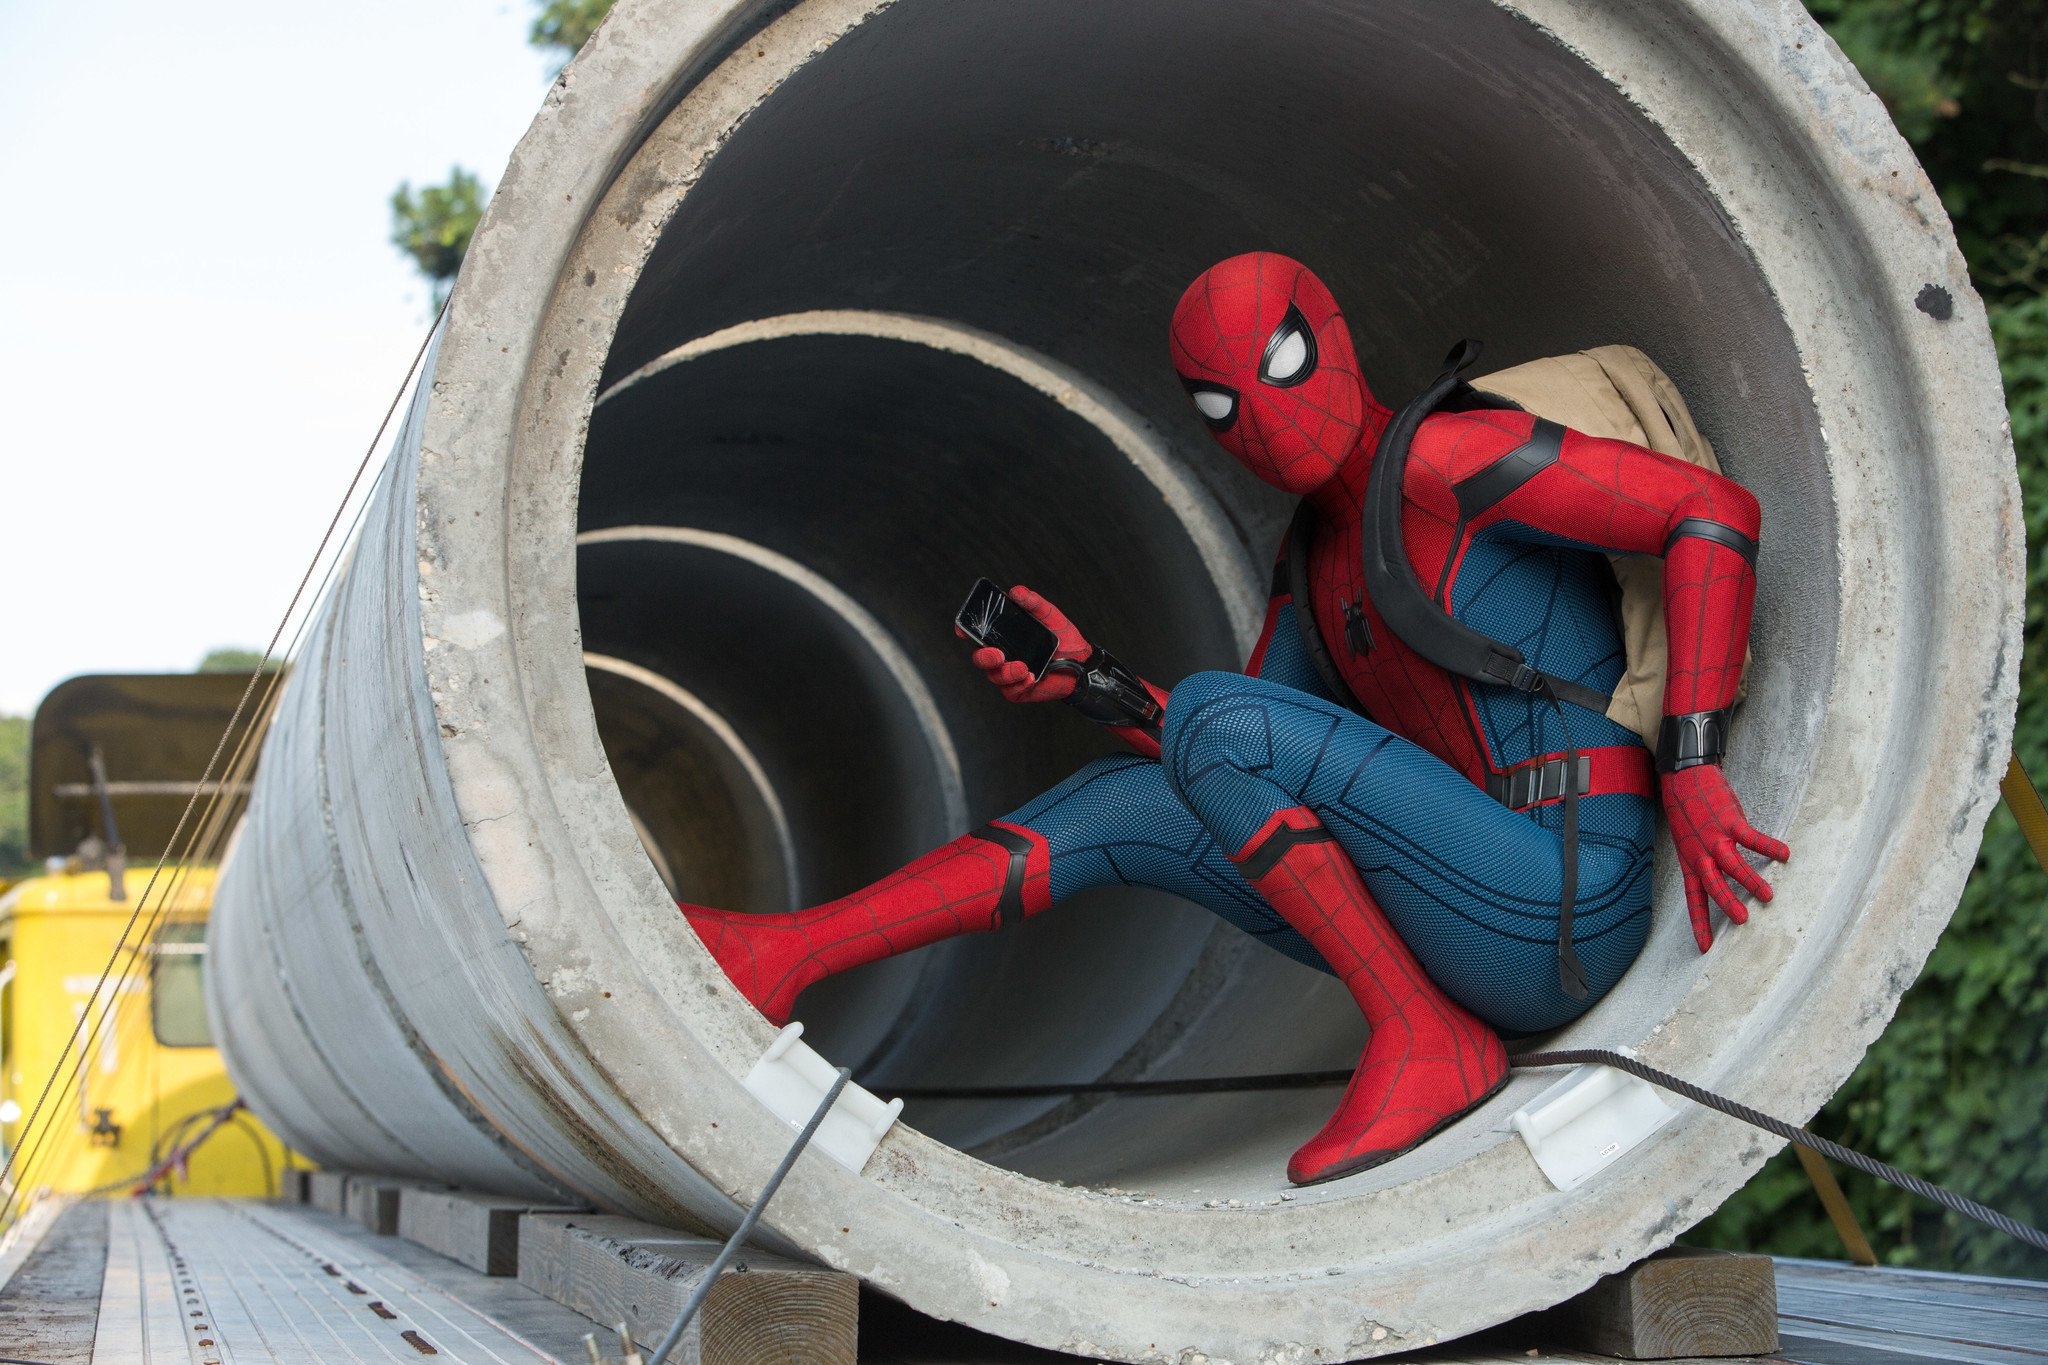 Spider Man Homecoming Spider Drone - HD Wallpaper